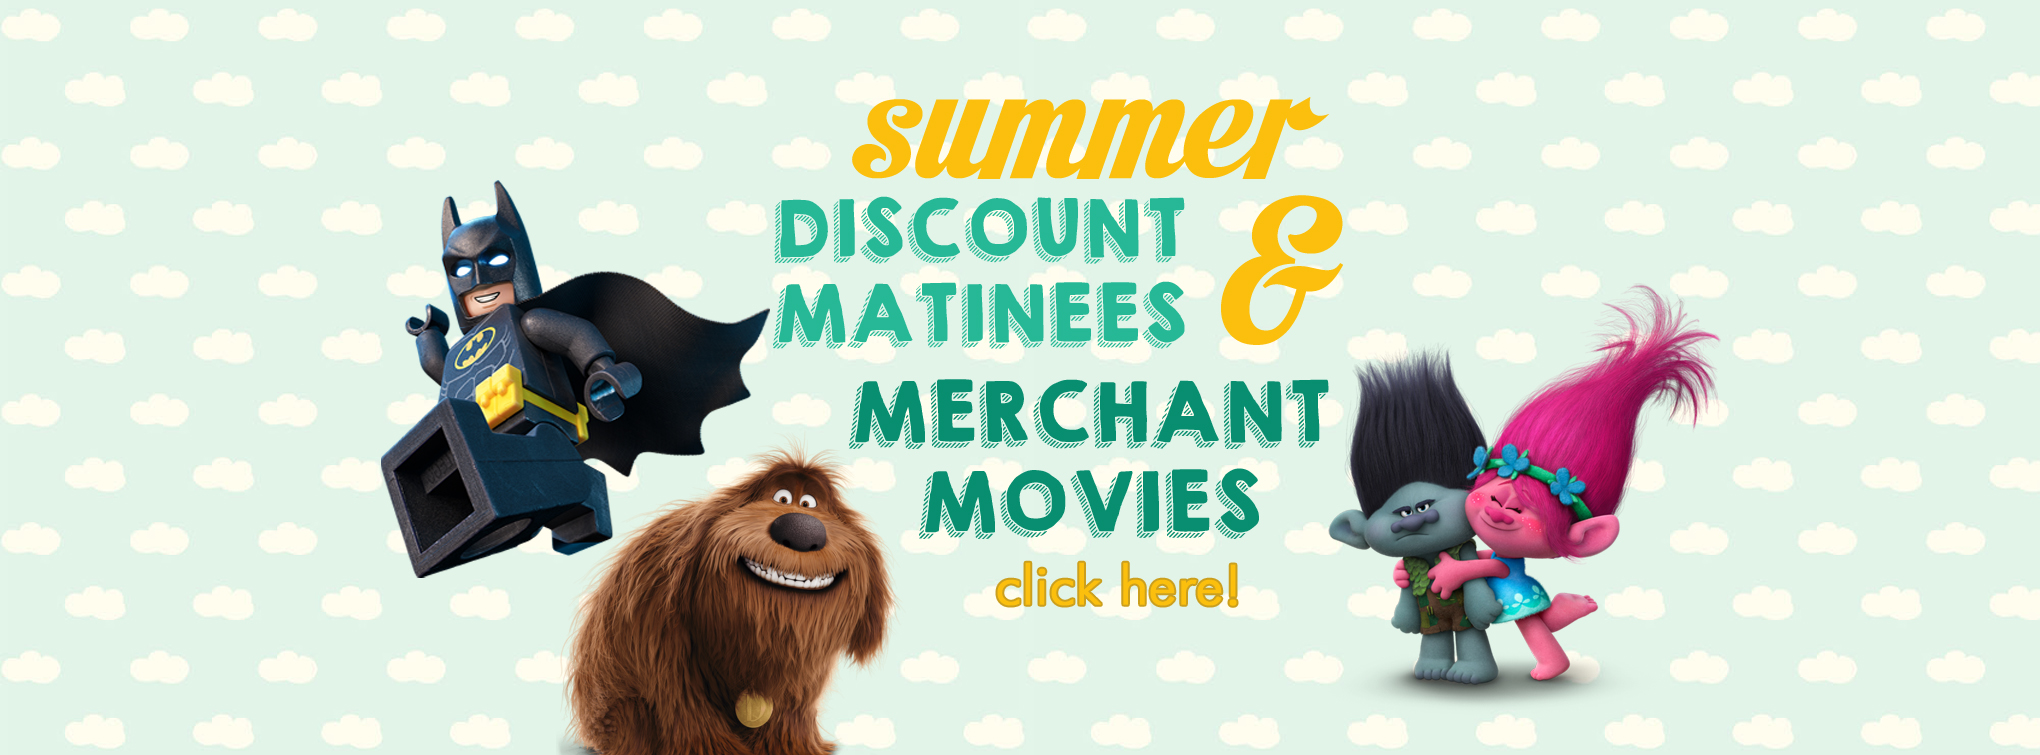 Summer Discount Matinees and Merchant Movies - click here for more information!